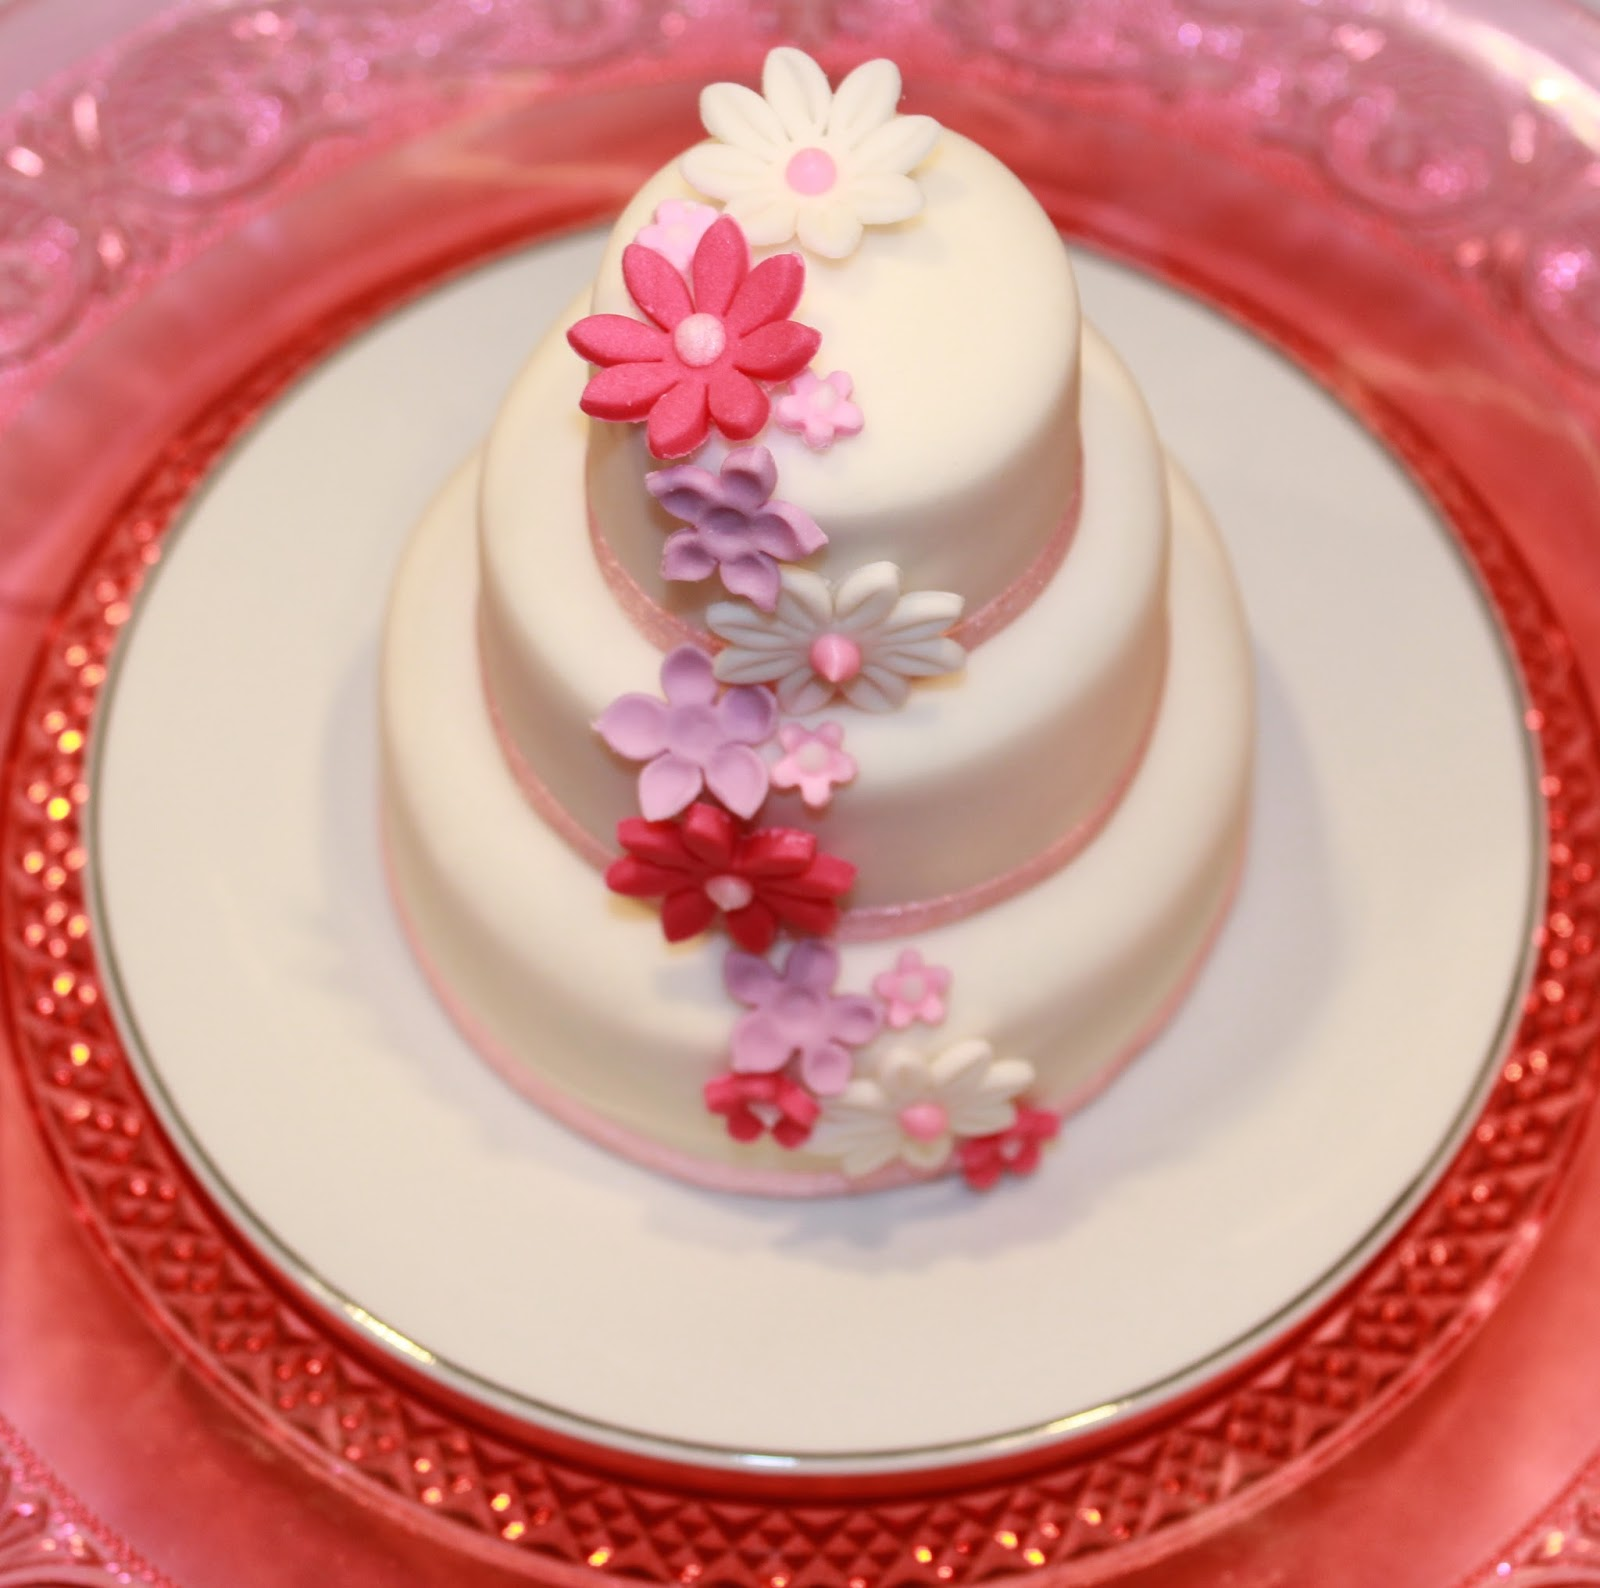 Crescent Cakes By Kath 3 Tiered Mini Cake